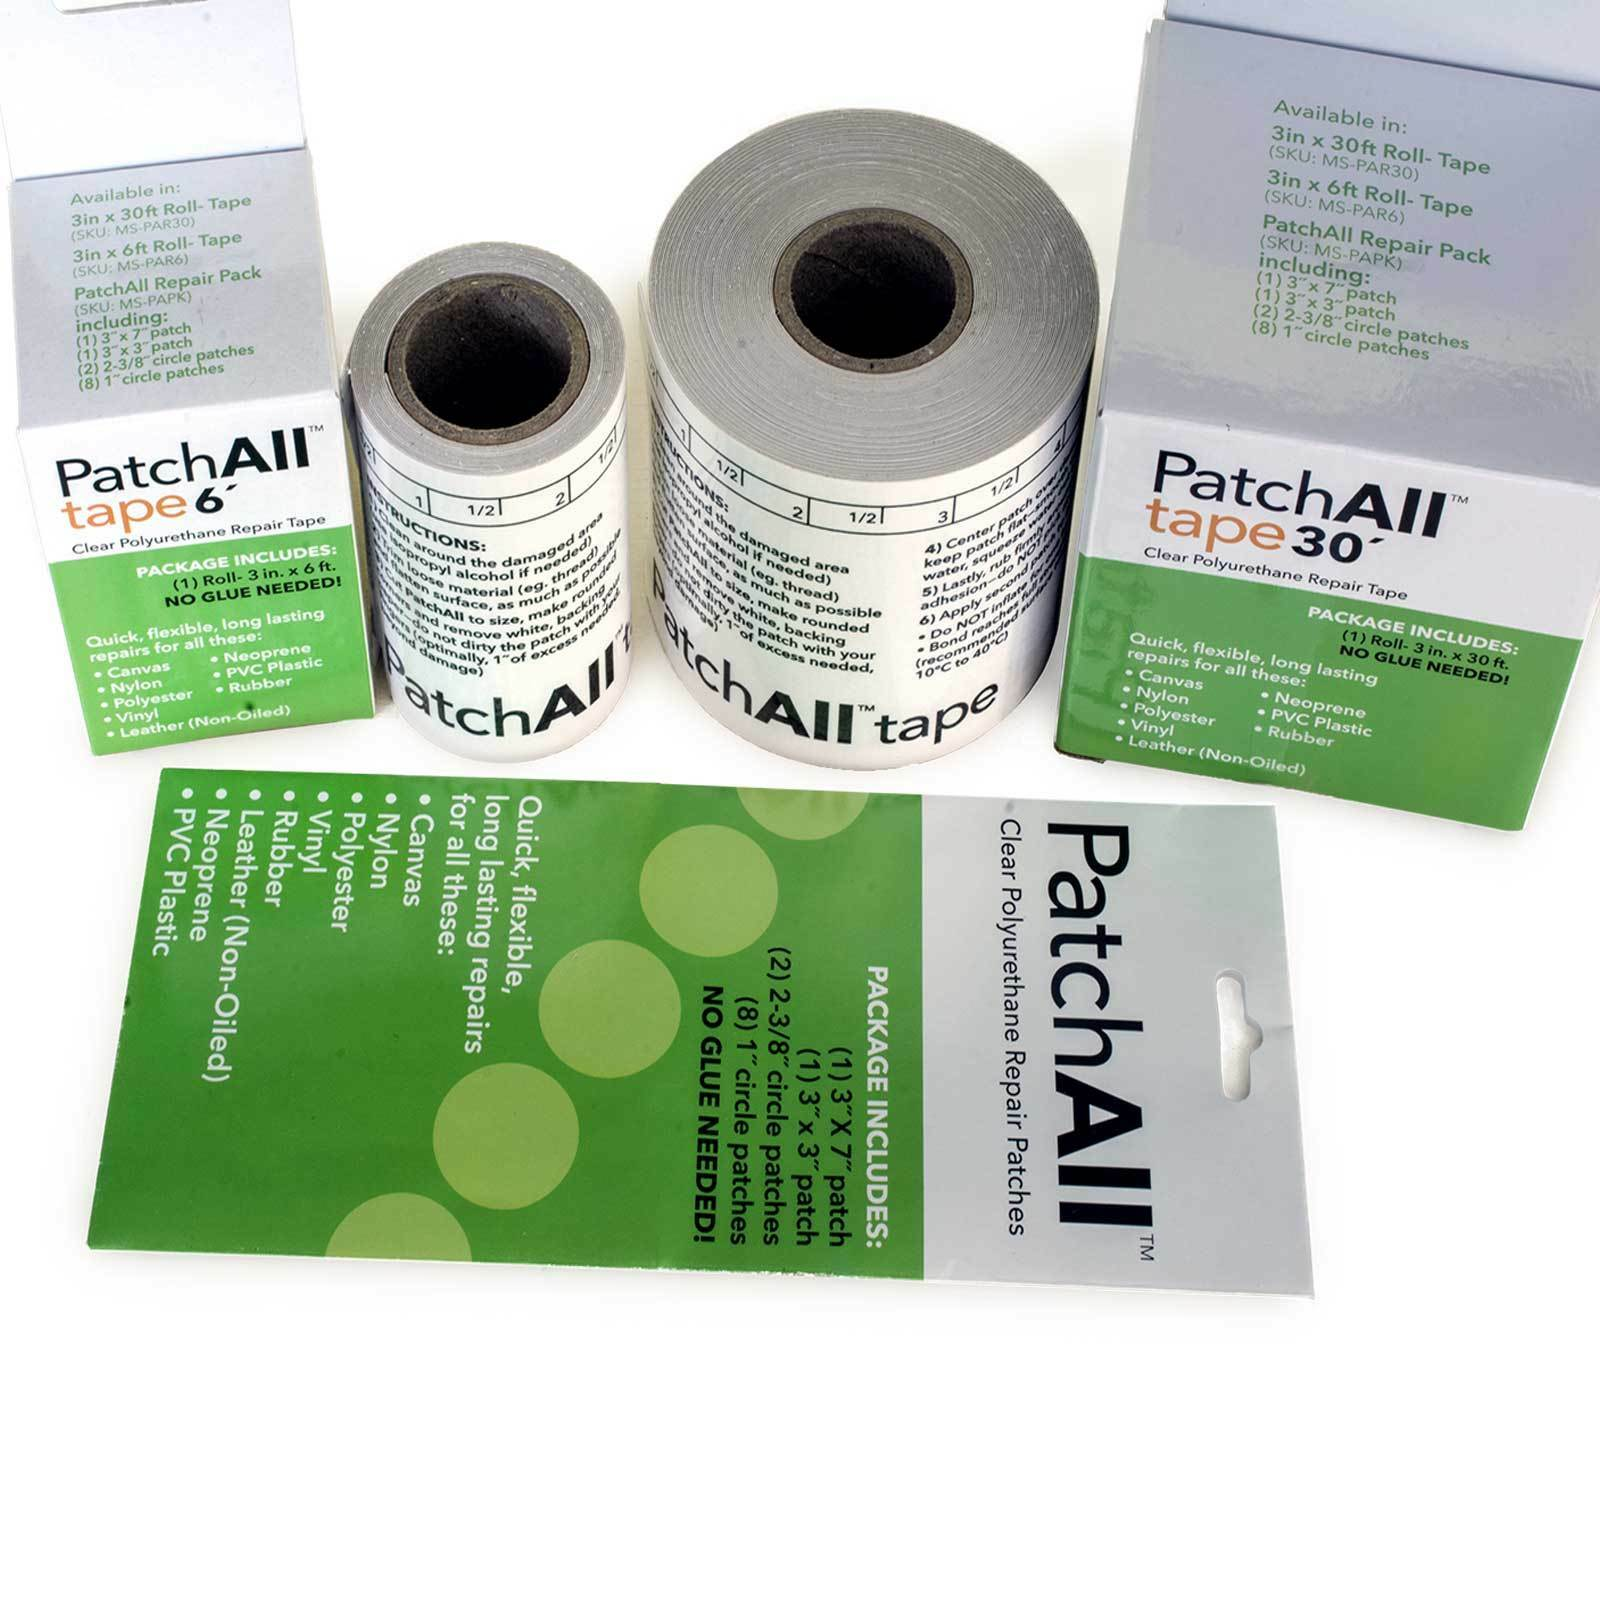 PatchAll Waterproof Clear Tape Vinyl Leather Canvas Flexible Repair Patch Fix